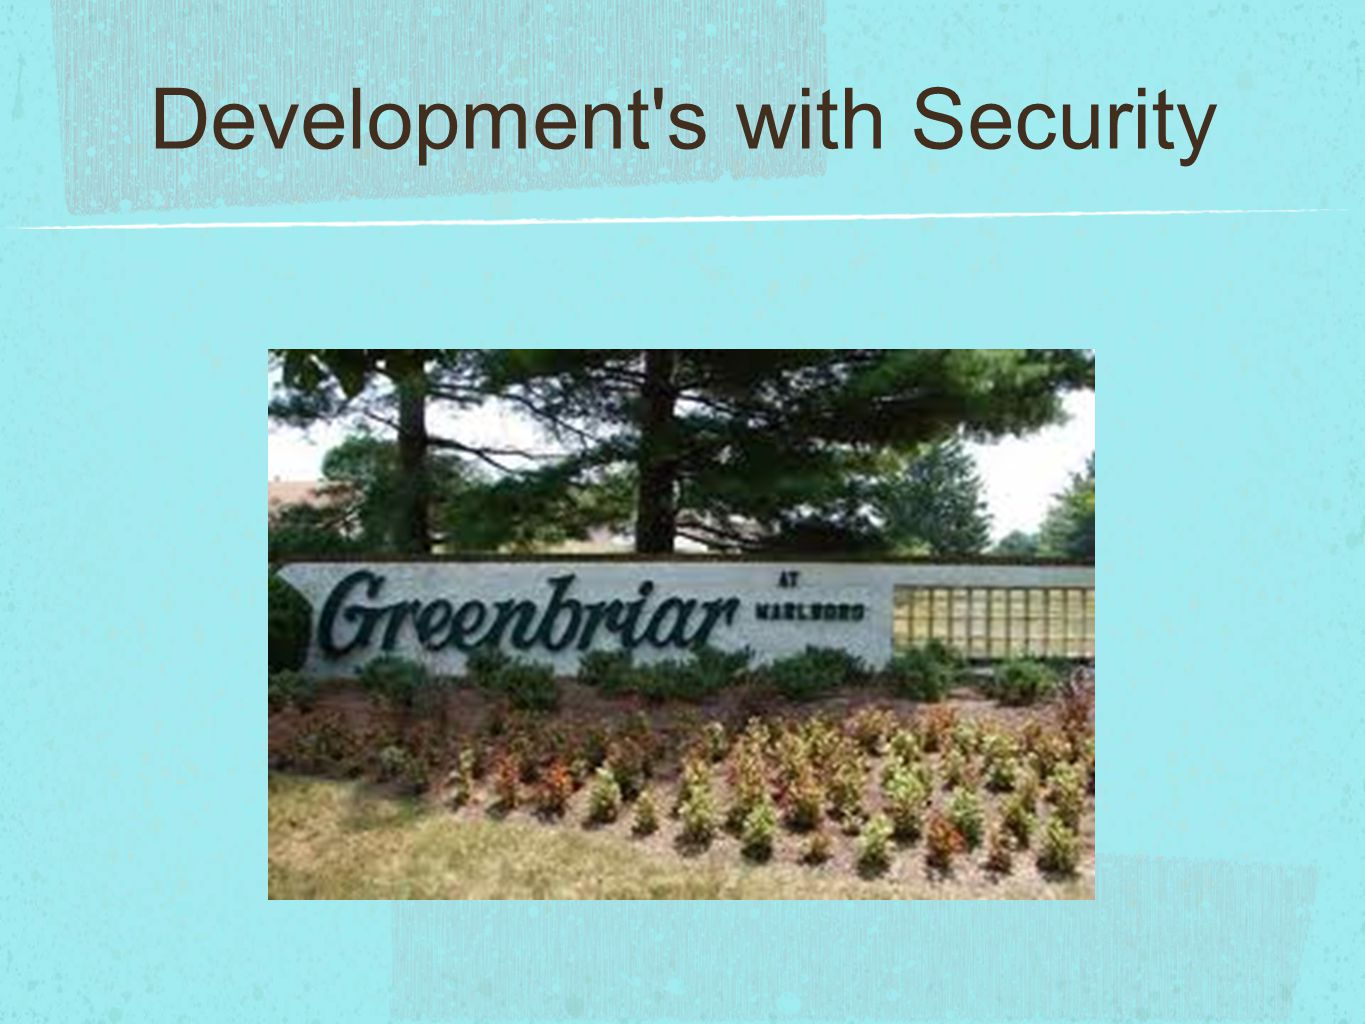 Development's with Security